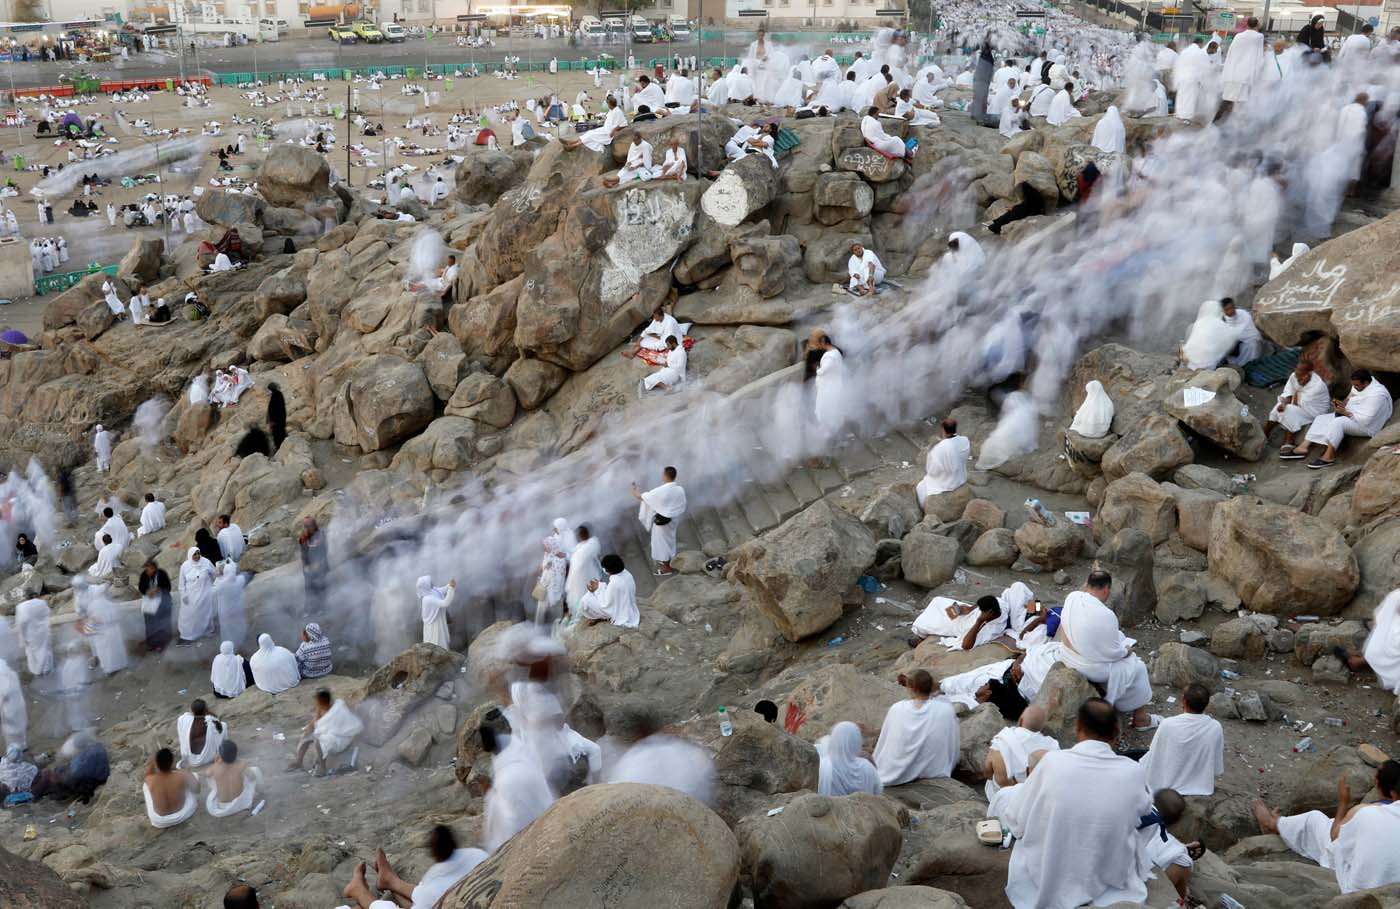 Muslim pilgrims gather on Mount Mercy on the plains of Arafat during the annual haj pilgrimage, outside the holy city of Mecca, Saudi Arabia August 31, 2017. Picture taken with long exposure.  REUTERS/Suhaib Salem